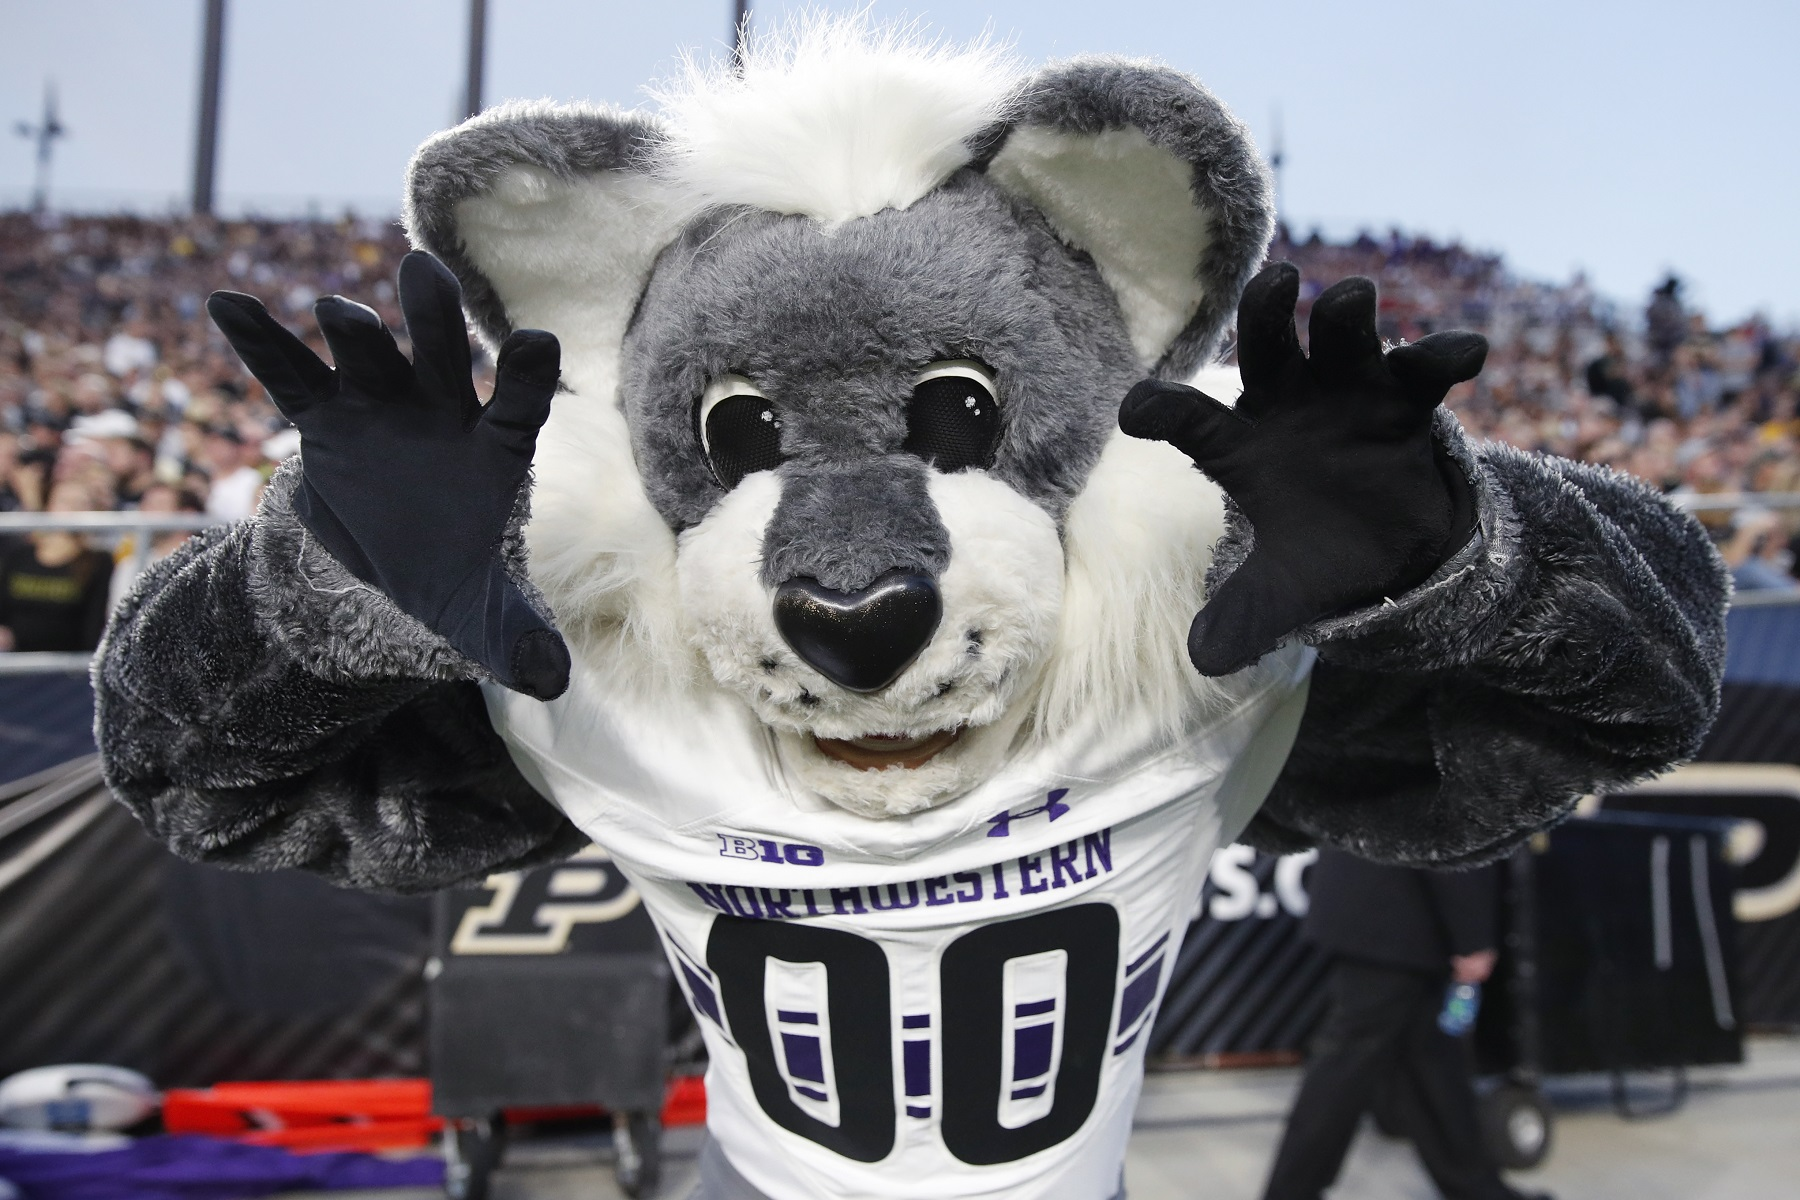 Darren Rovell has a $238,000 interest in seeing Northwestern beat Ohio State in college football